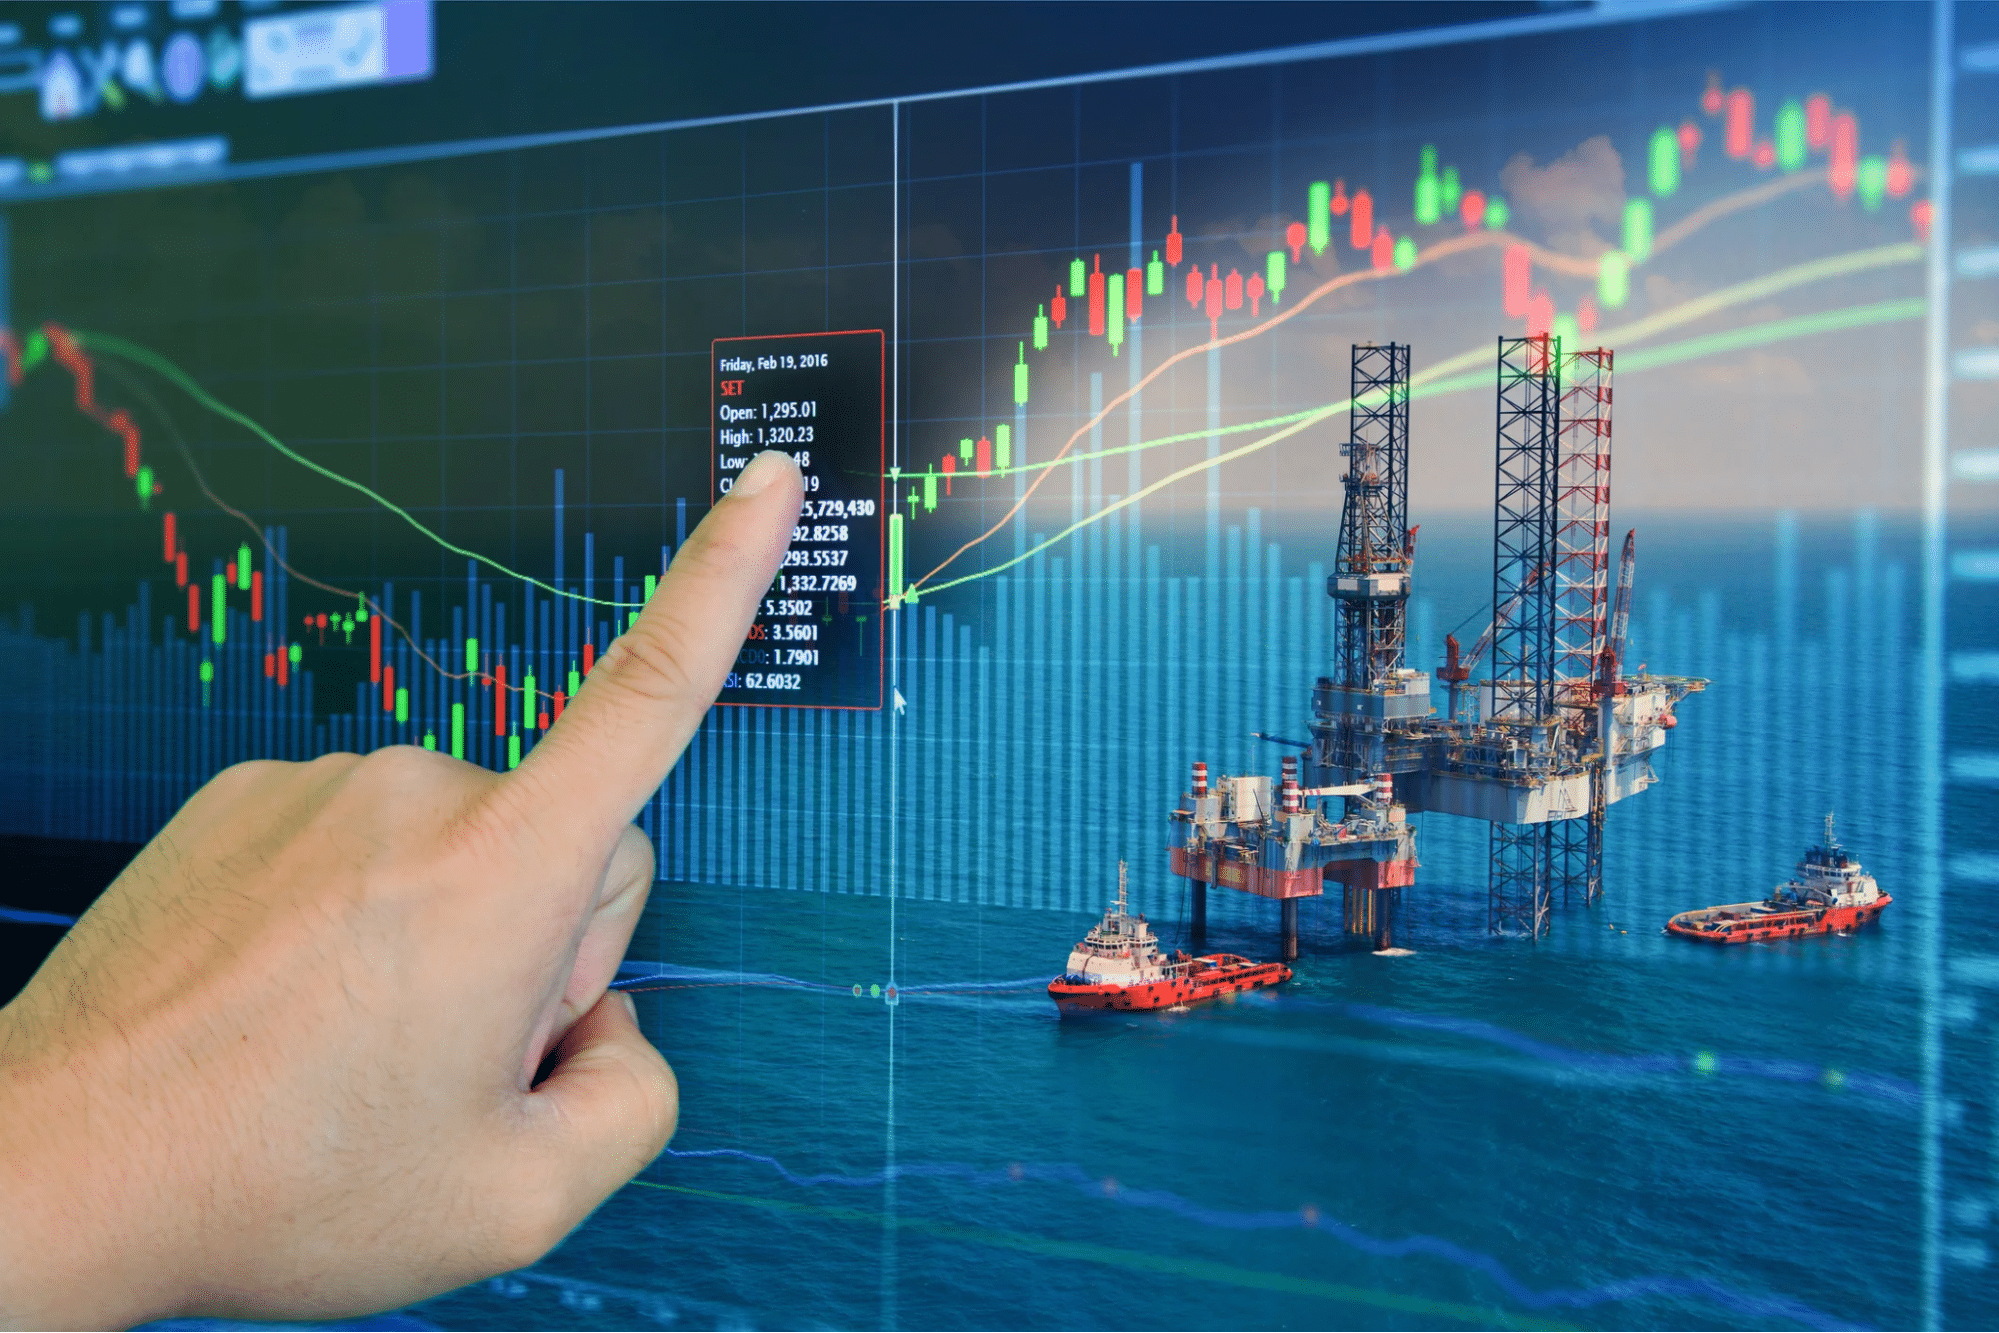 trading chart and natural gas drilling station